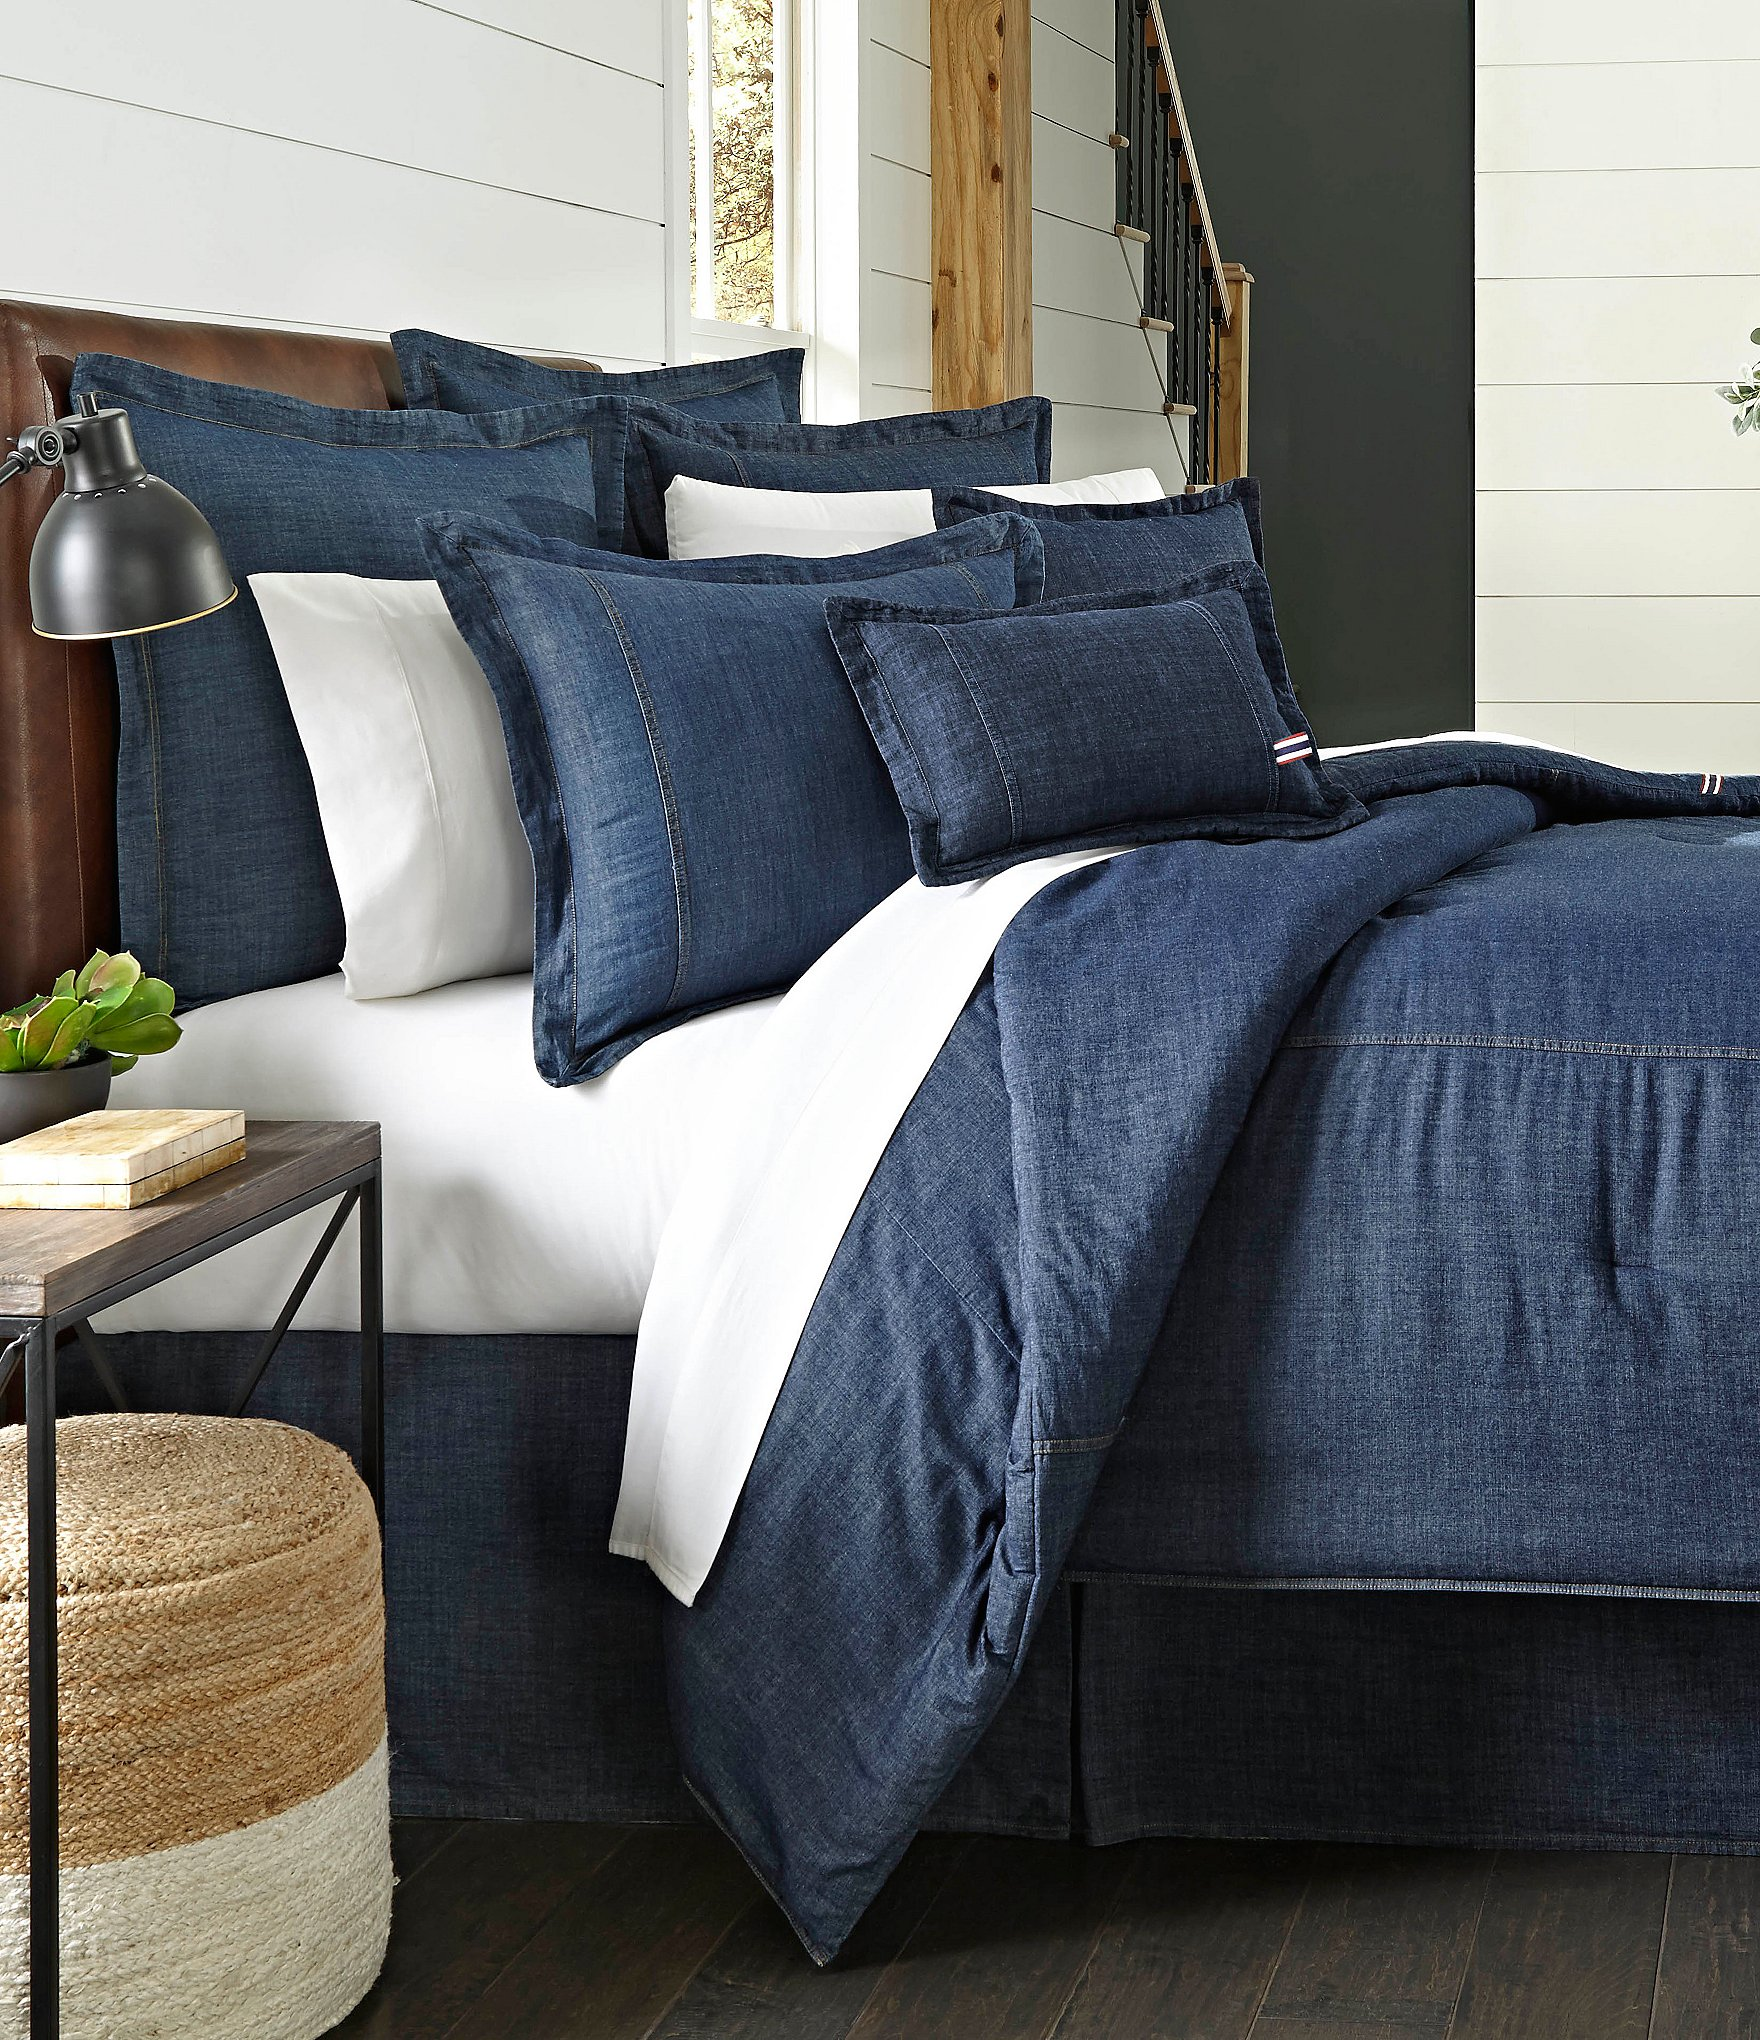 Cremieux Cotton Denim Duvet Dillard S